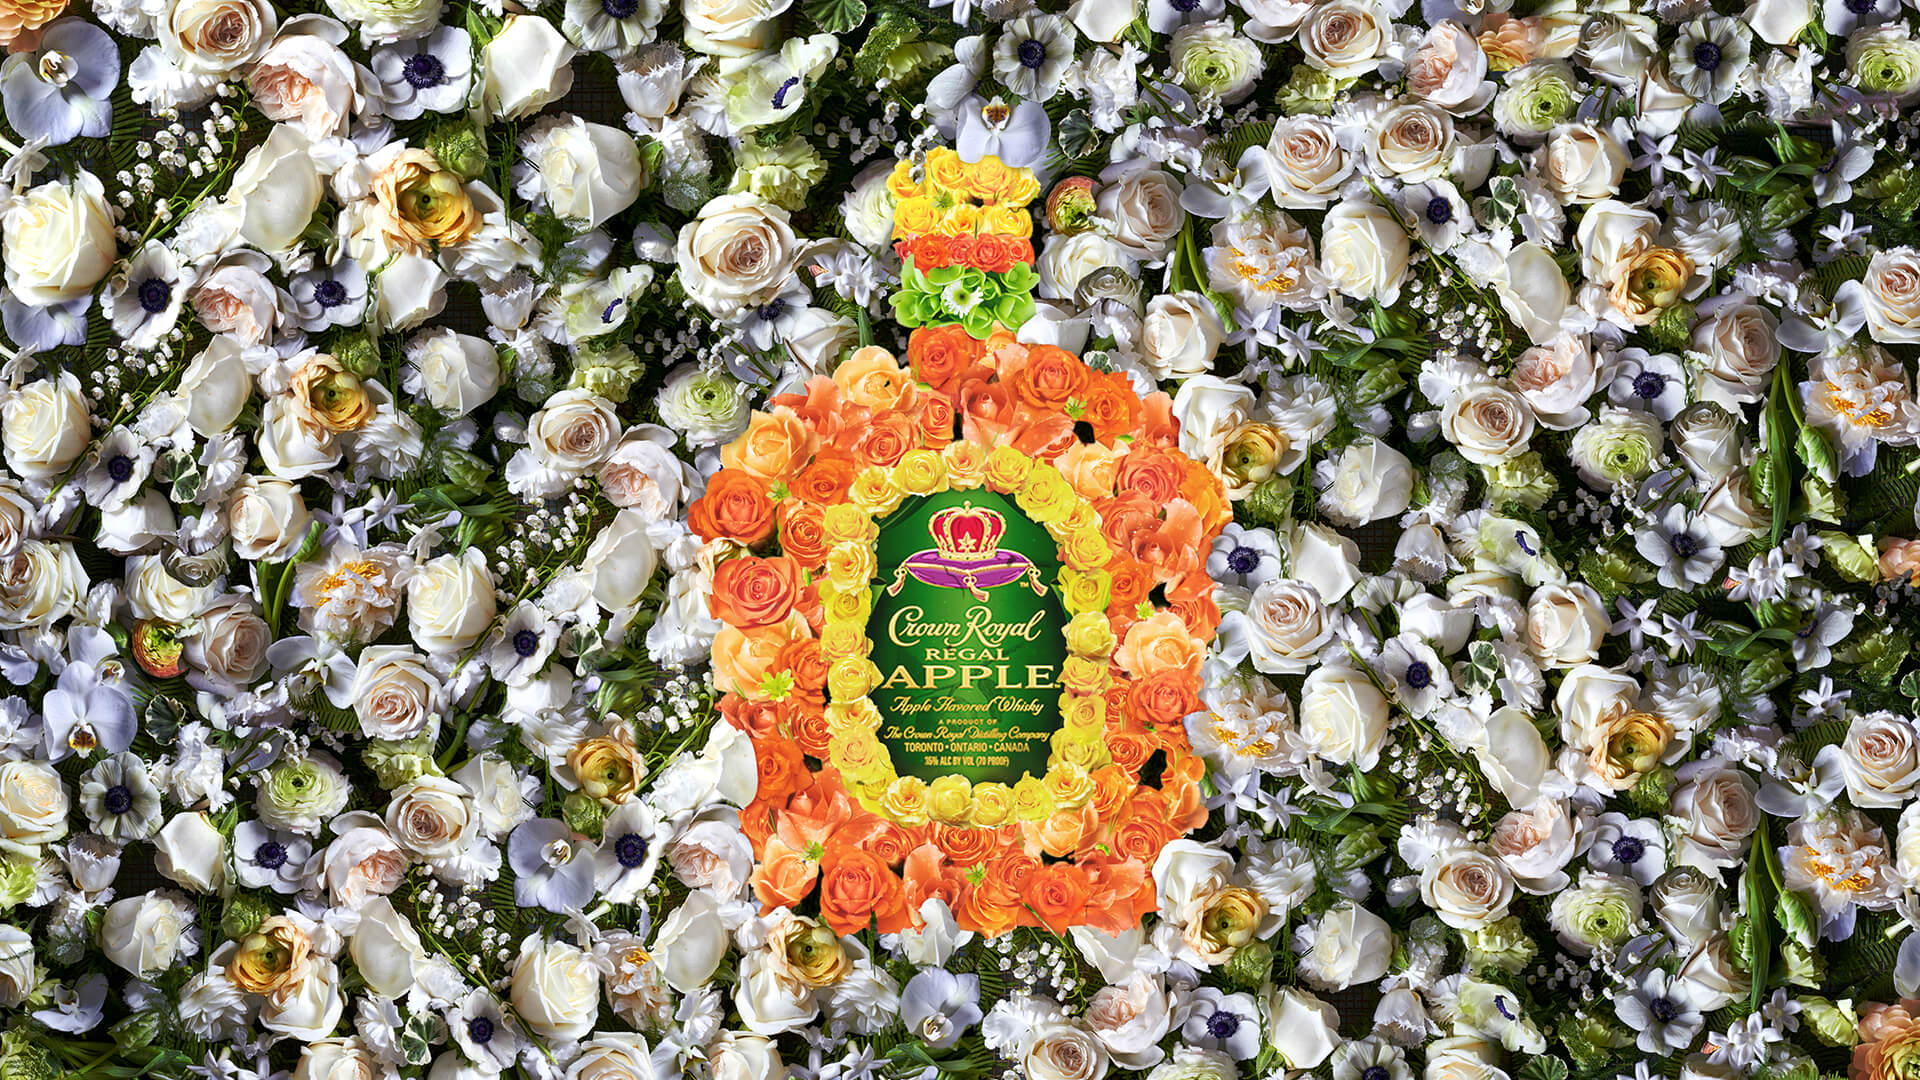 Crown Royal Scene Classic Flowerbed